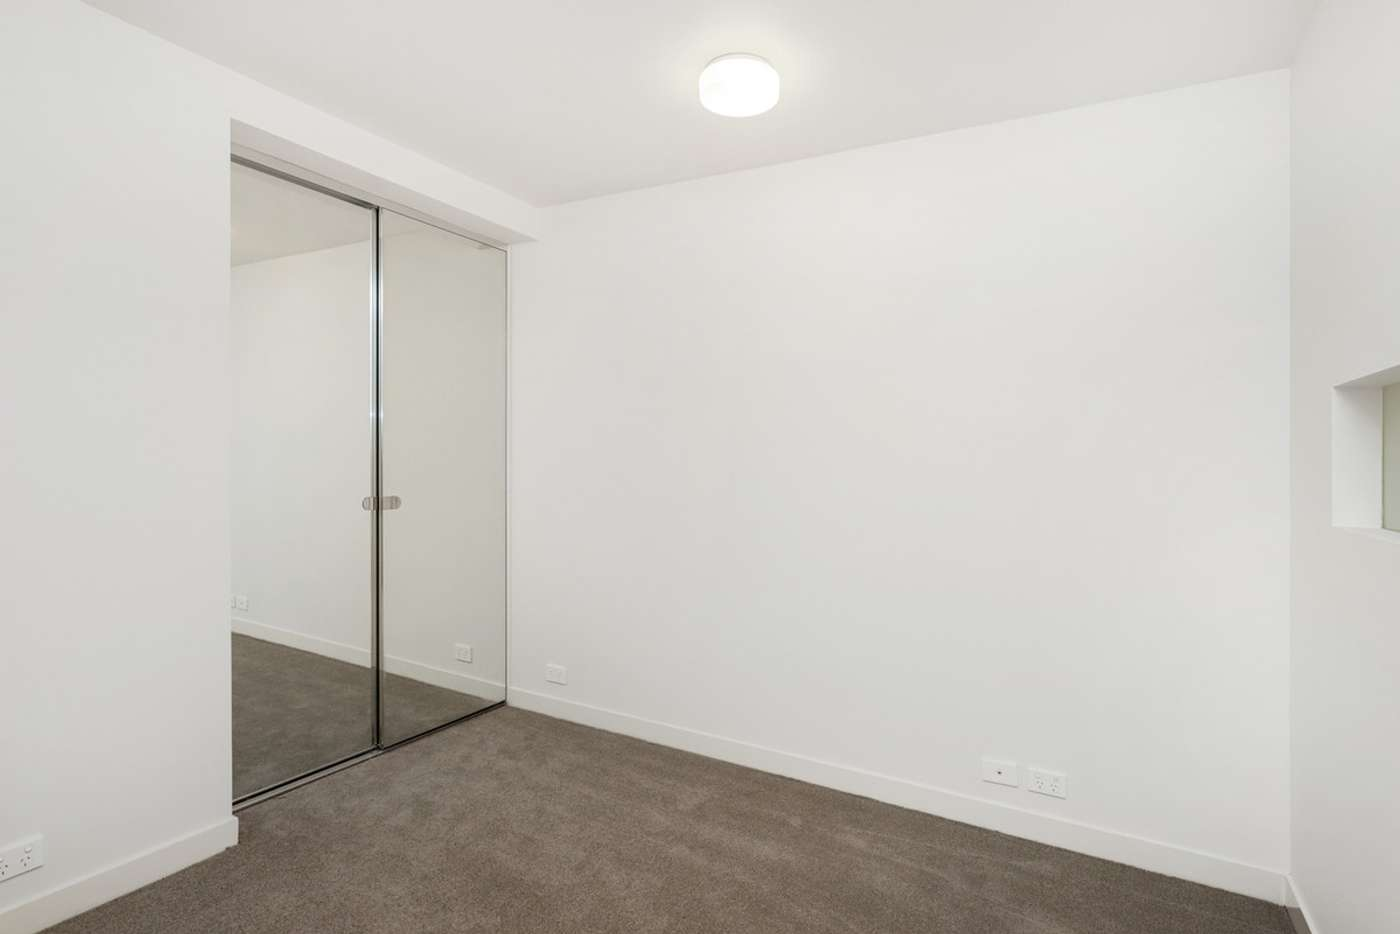 Sixth view of Homely apartment listing, 126/70 Nott Street, Port Melbourne VIC 3207